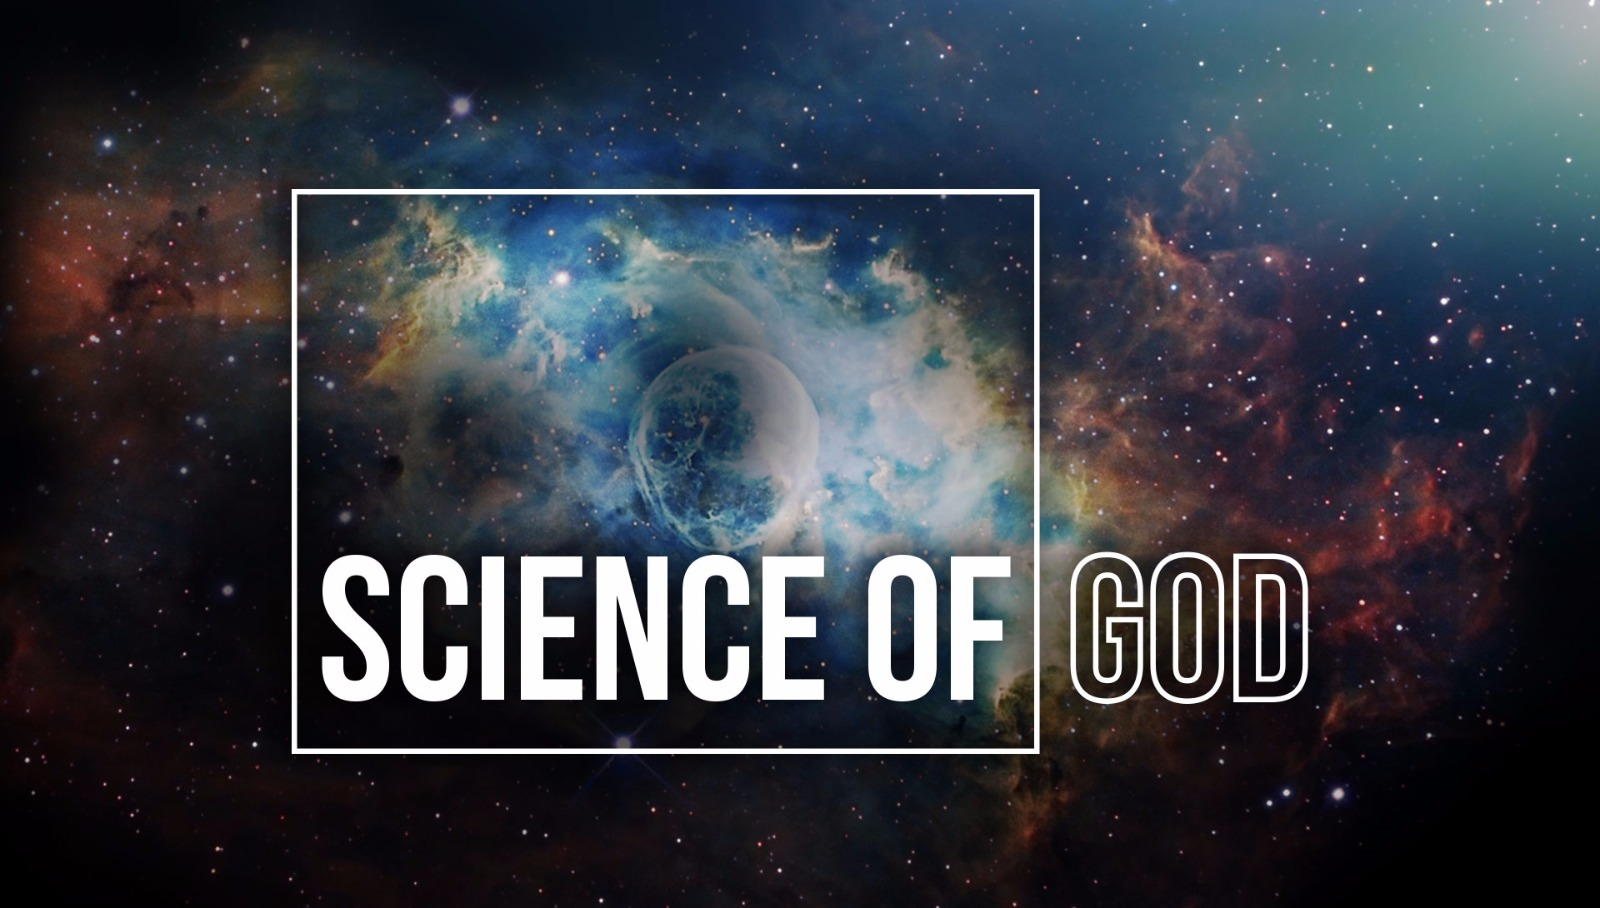 SCIENCE OF GOD – CONFERENCE 29th April 2017 @ TAJ SAMUDRA, COLOMBO SL